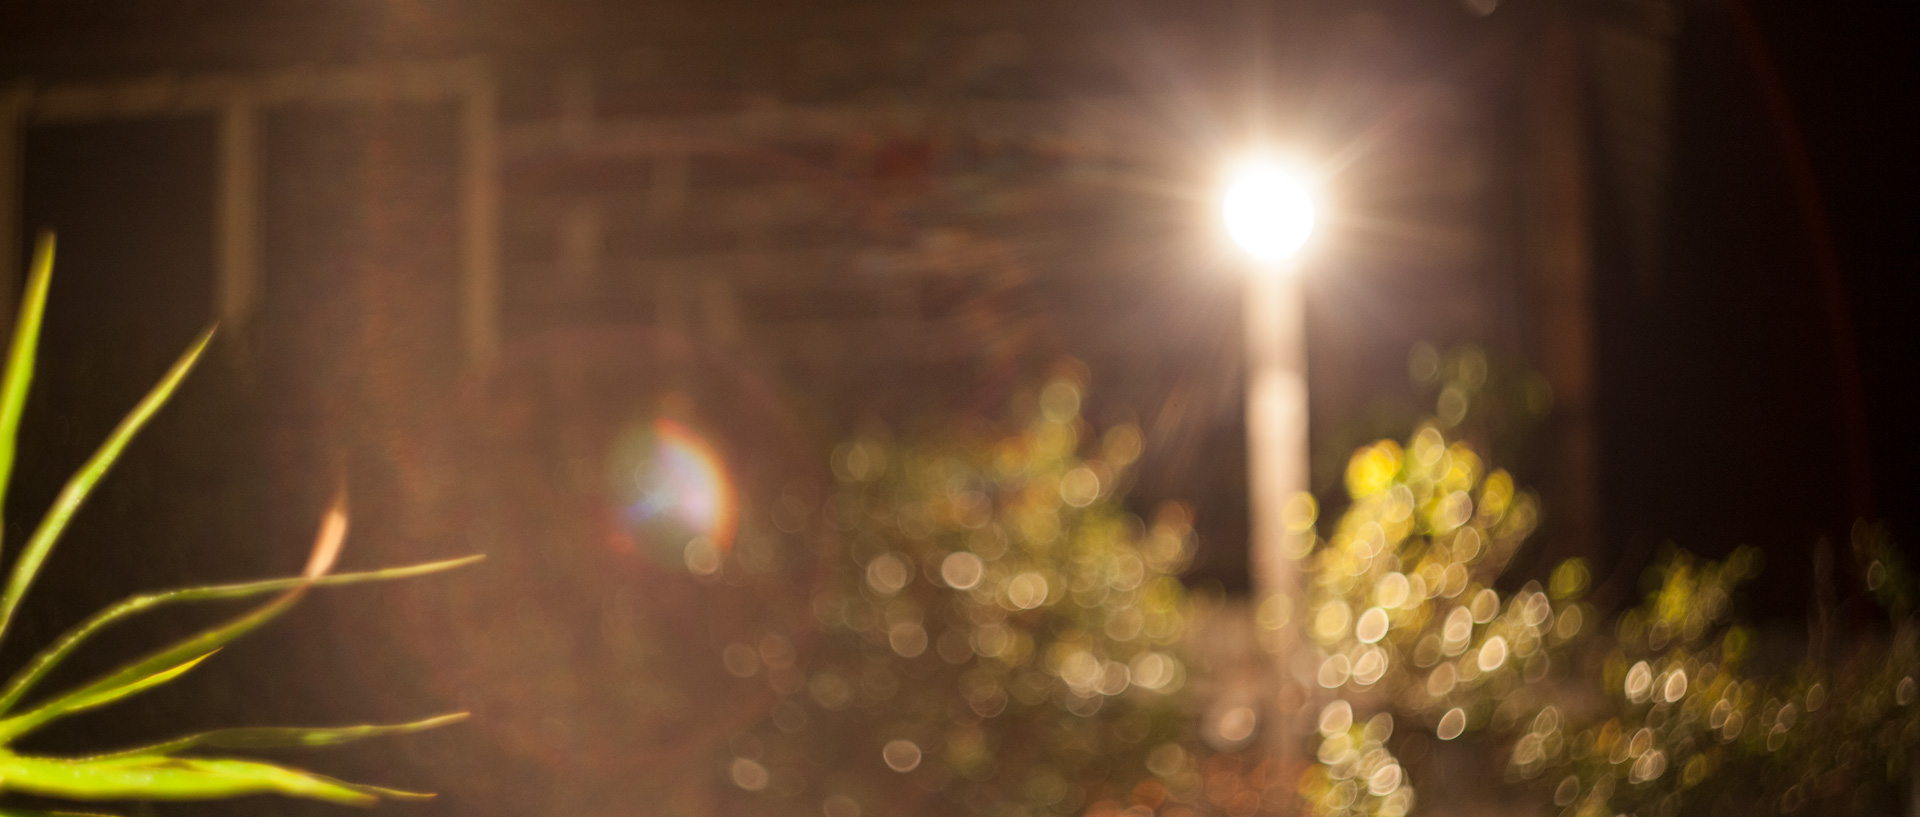 SWIRLING OUT OF FOCUS BOKEH & RAINBOW FLARE HIGHLIGHTS FROM A BACKYARD FLOODLIGHT SOURCE.